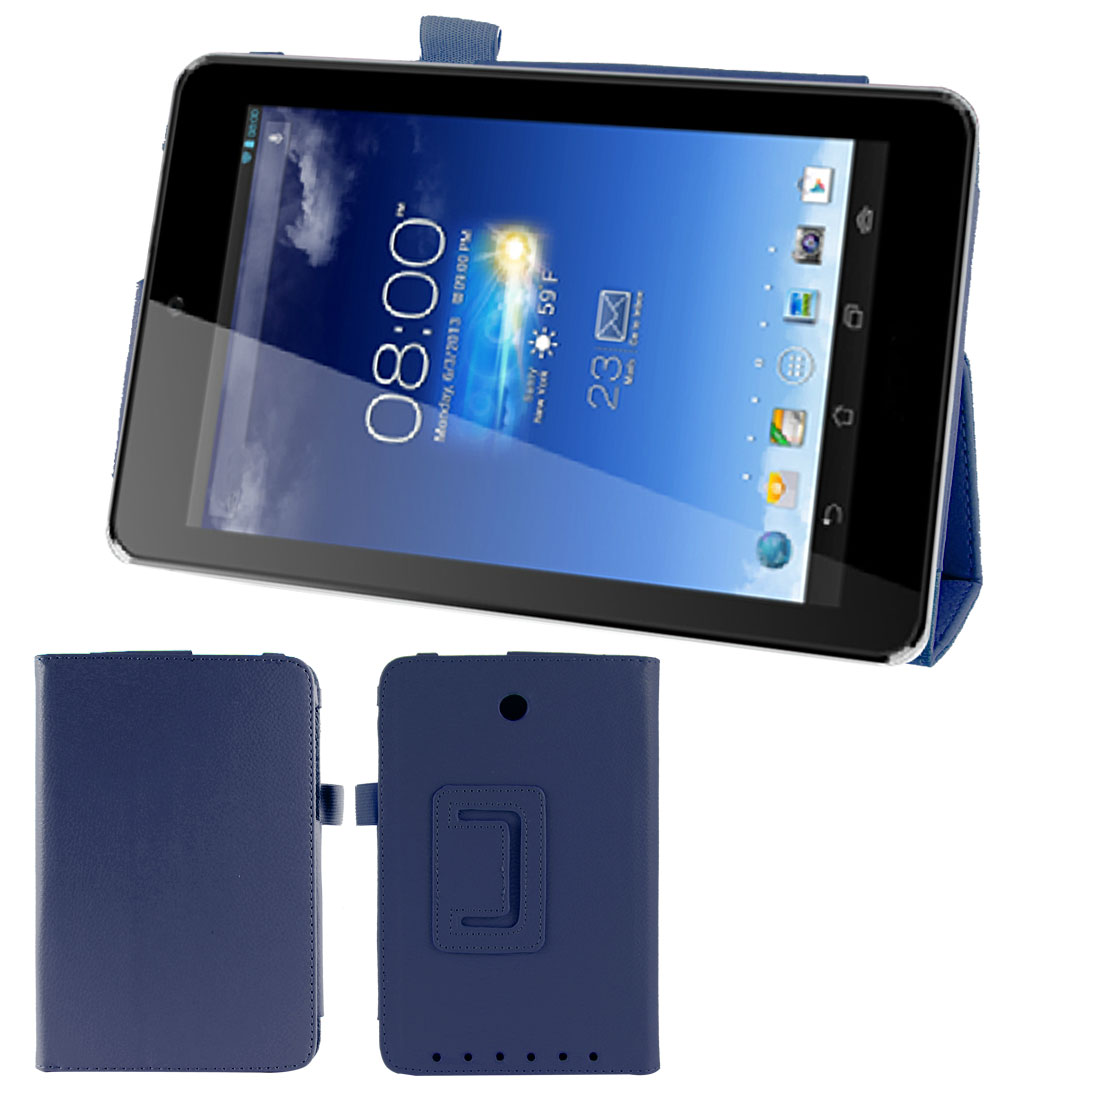 Stand Magnetic Flip Protective Case Cover Dark Blue for ASUS MeMO Pad 7 ME173X